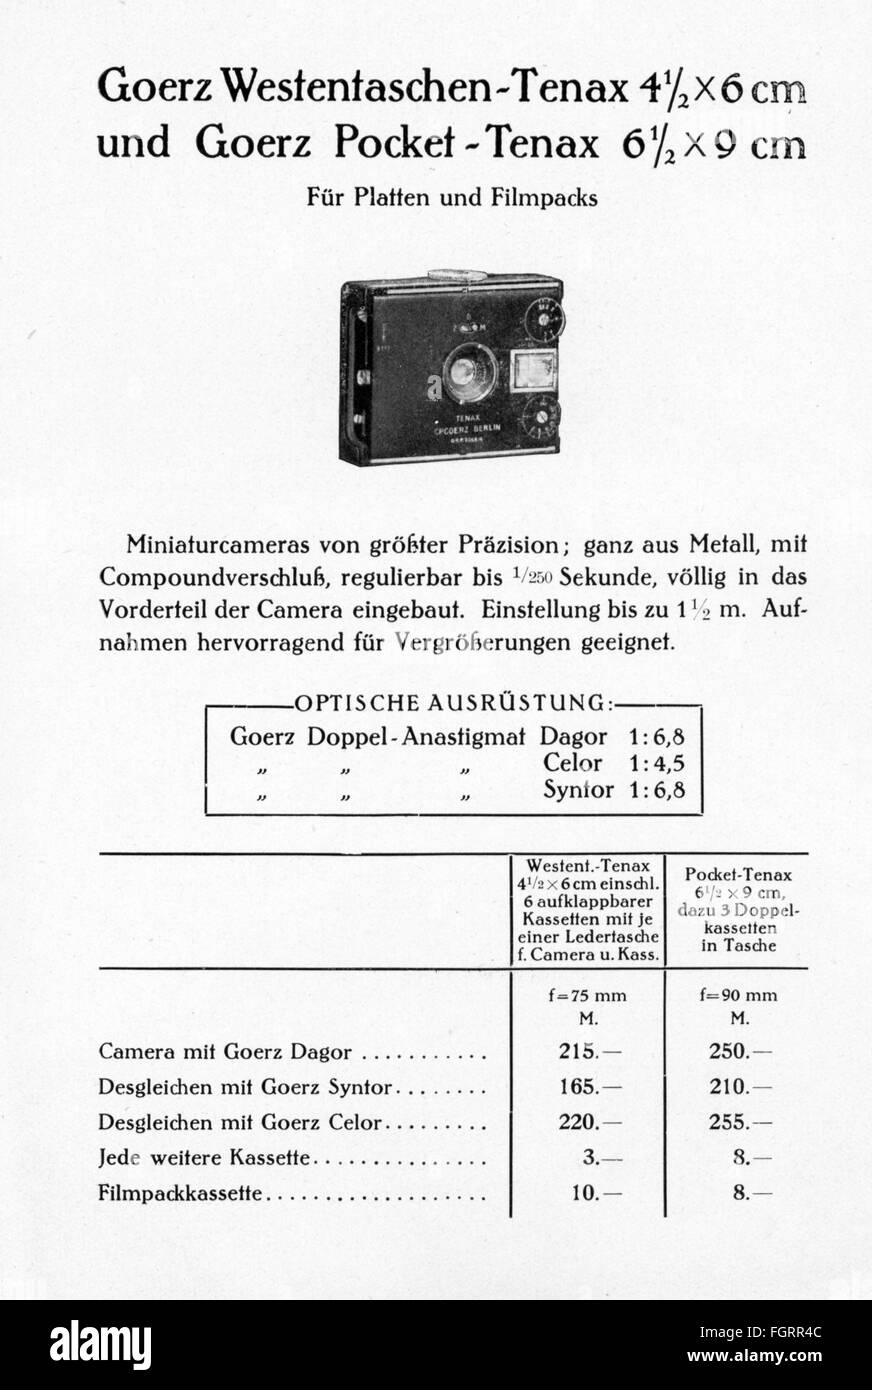 advertising, photography, promotional leaflet for 'Goerz Tenax' cameras, Berlin, core, model 'Westentaschen - Stock Image